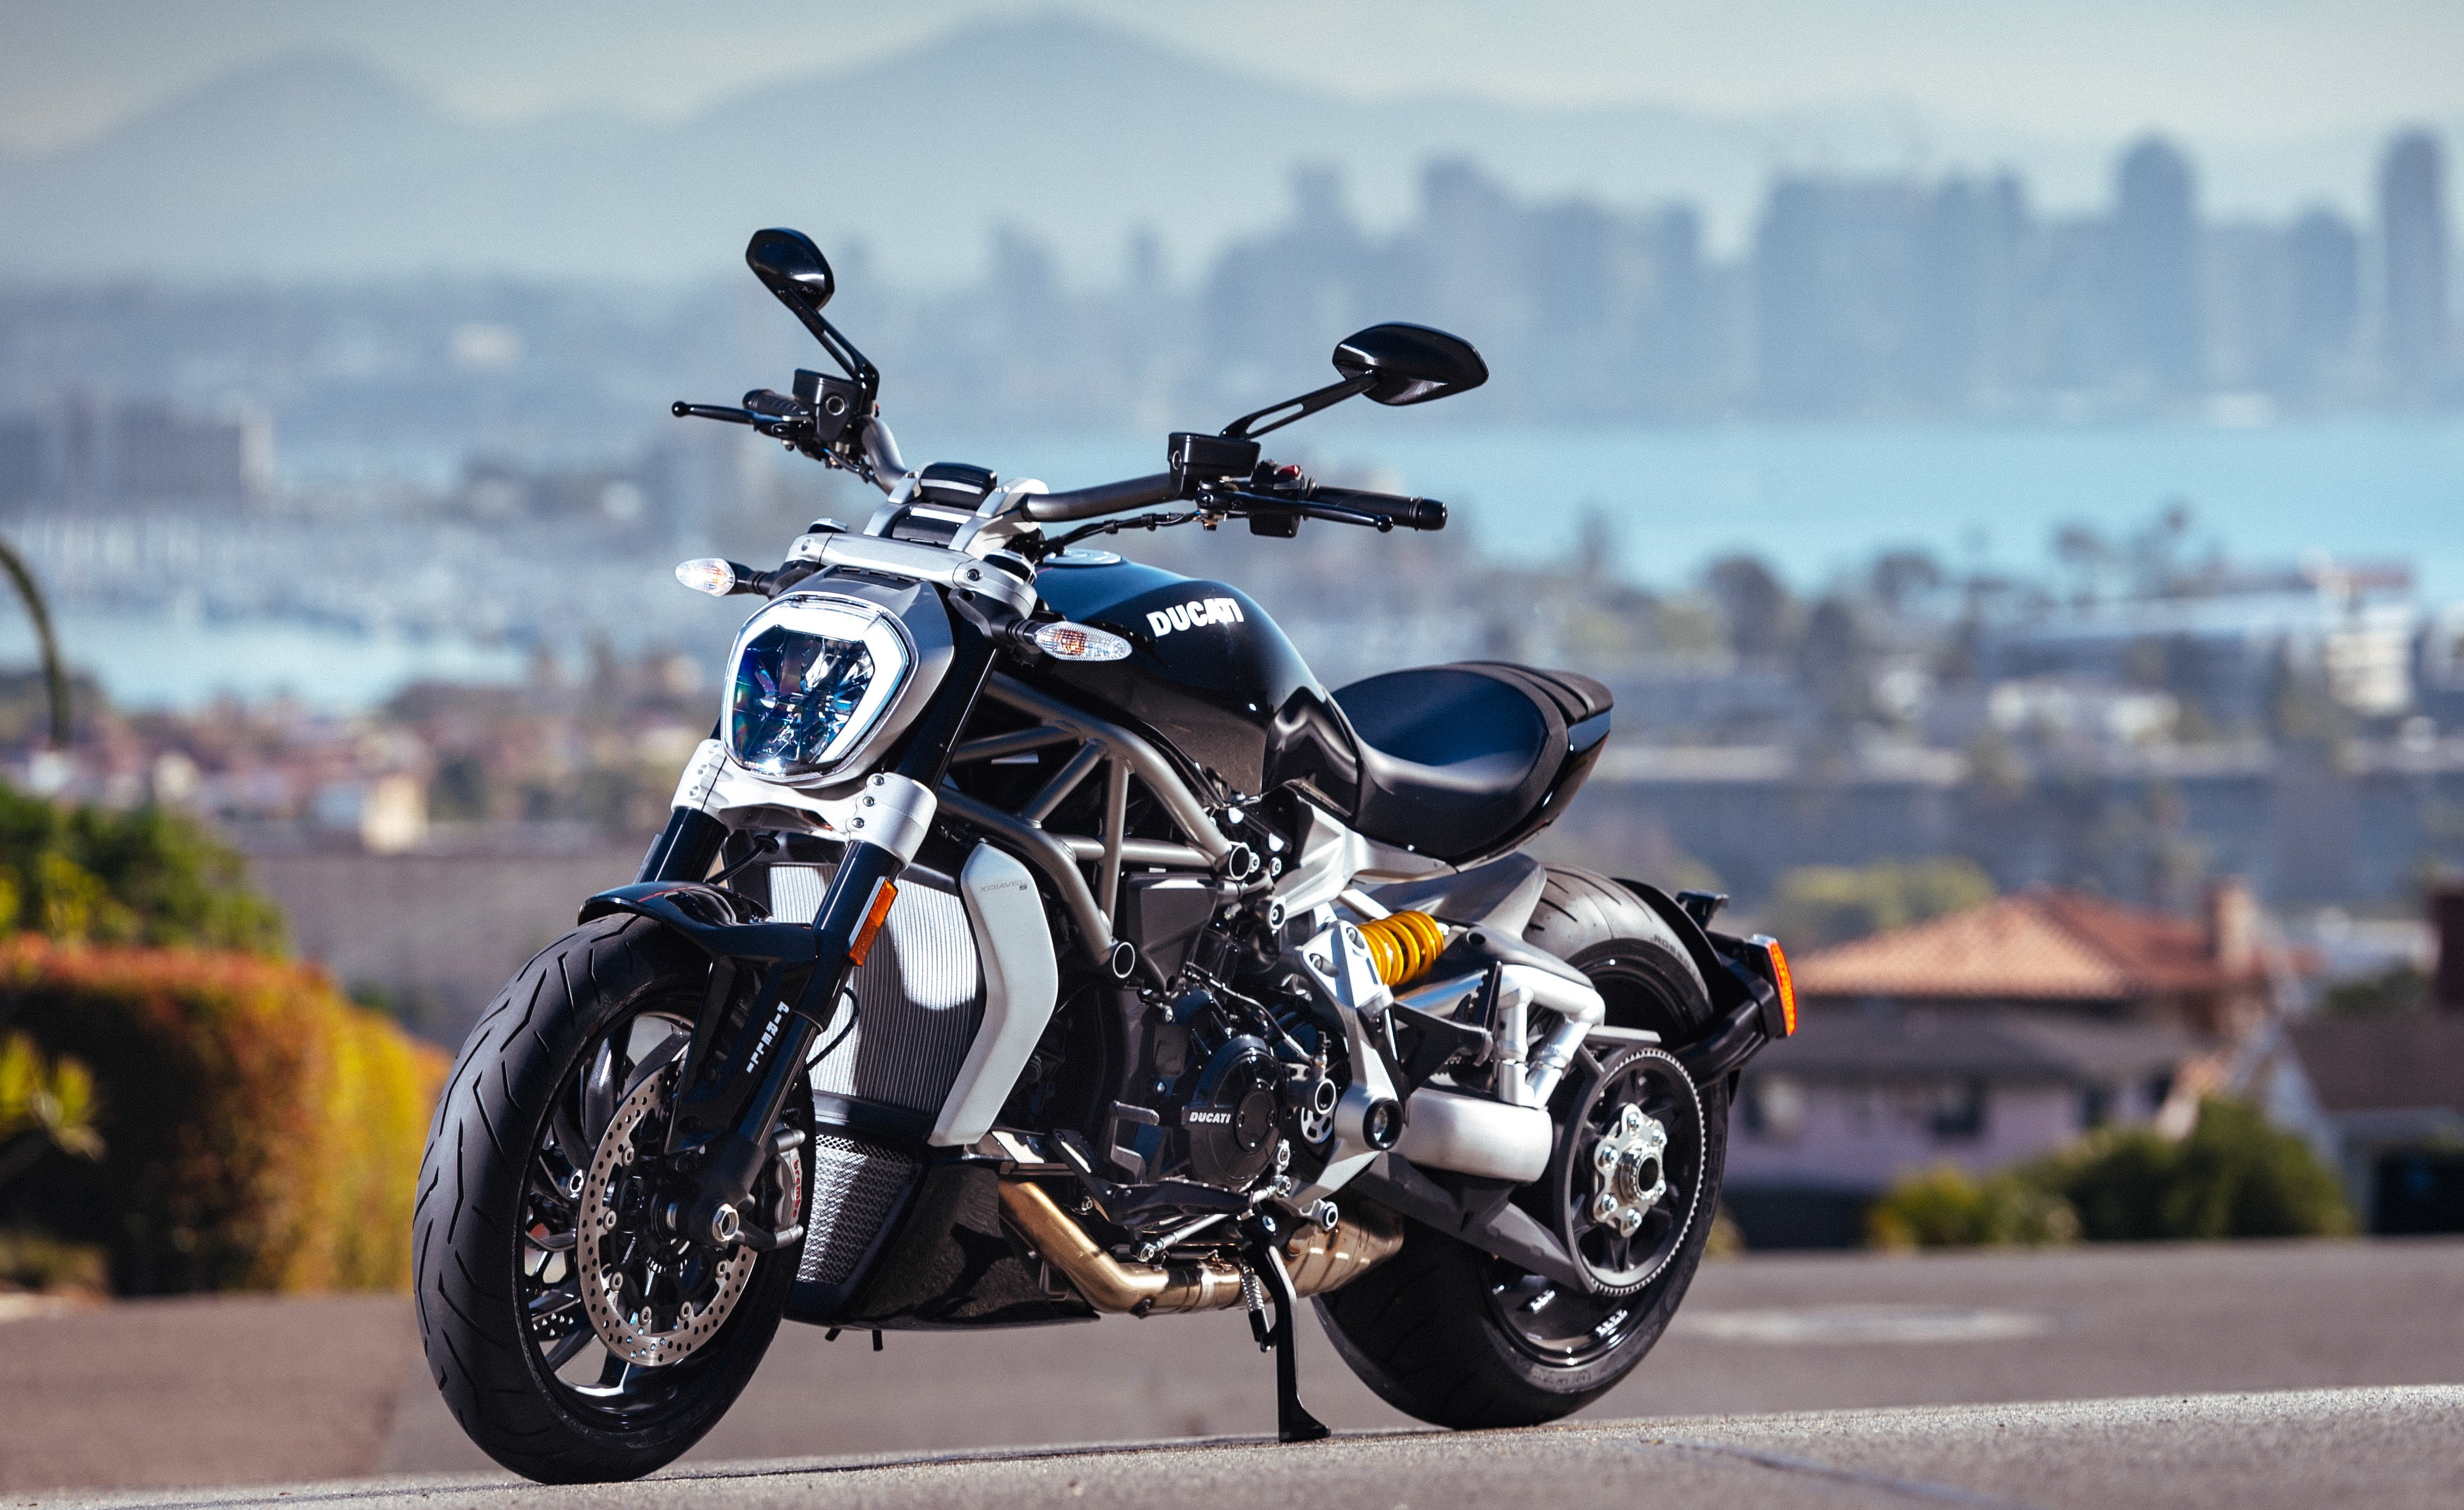 Top 10 Bike Companies In The World Tvm